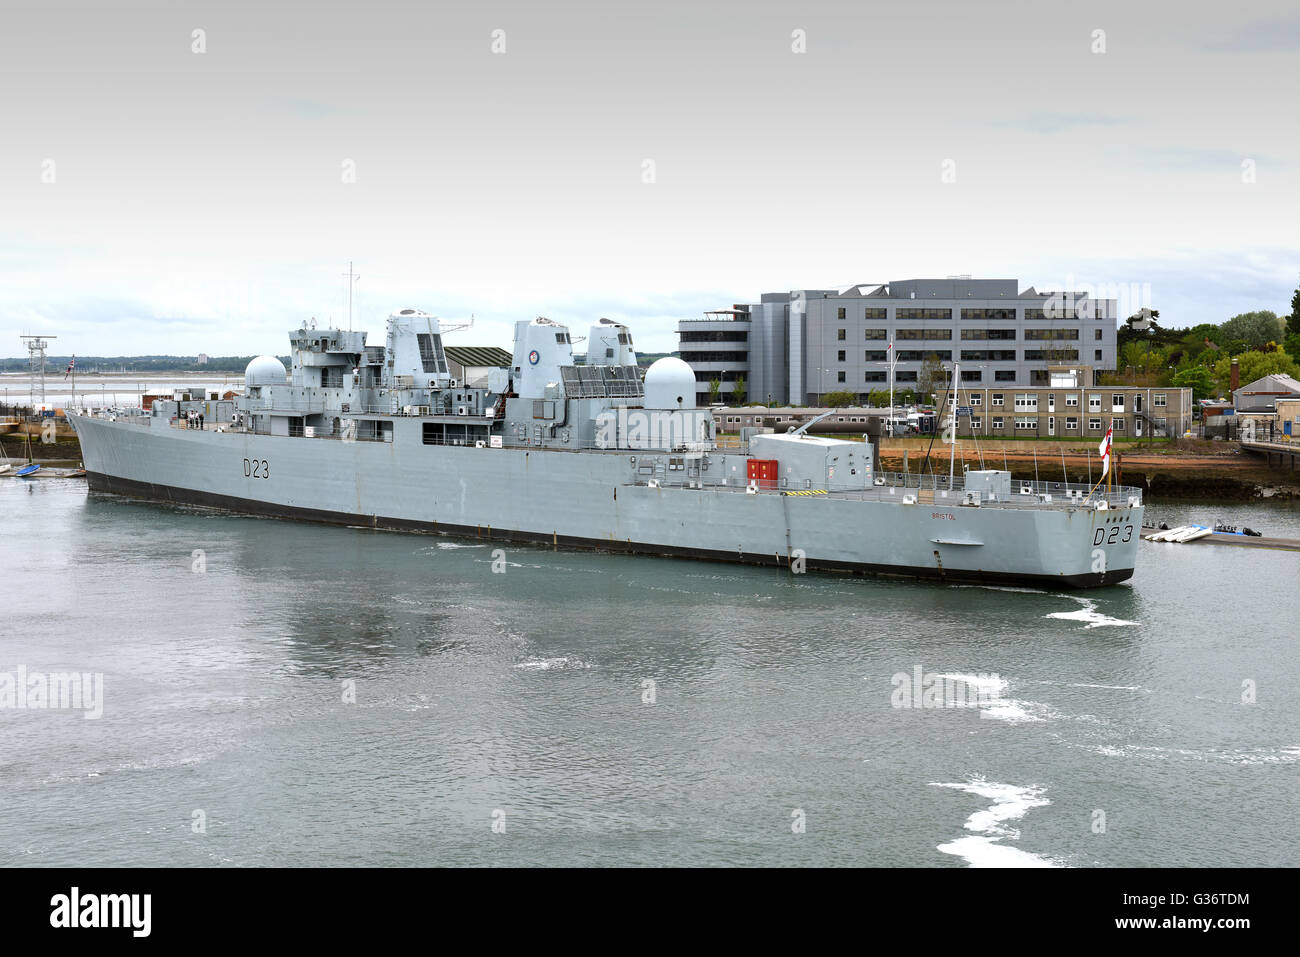 HMS Bristol D23 Type 82 destroyer ship Portsmouth Naval Base harbour in Hampshire England Uk - Stock Image